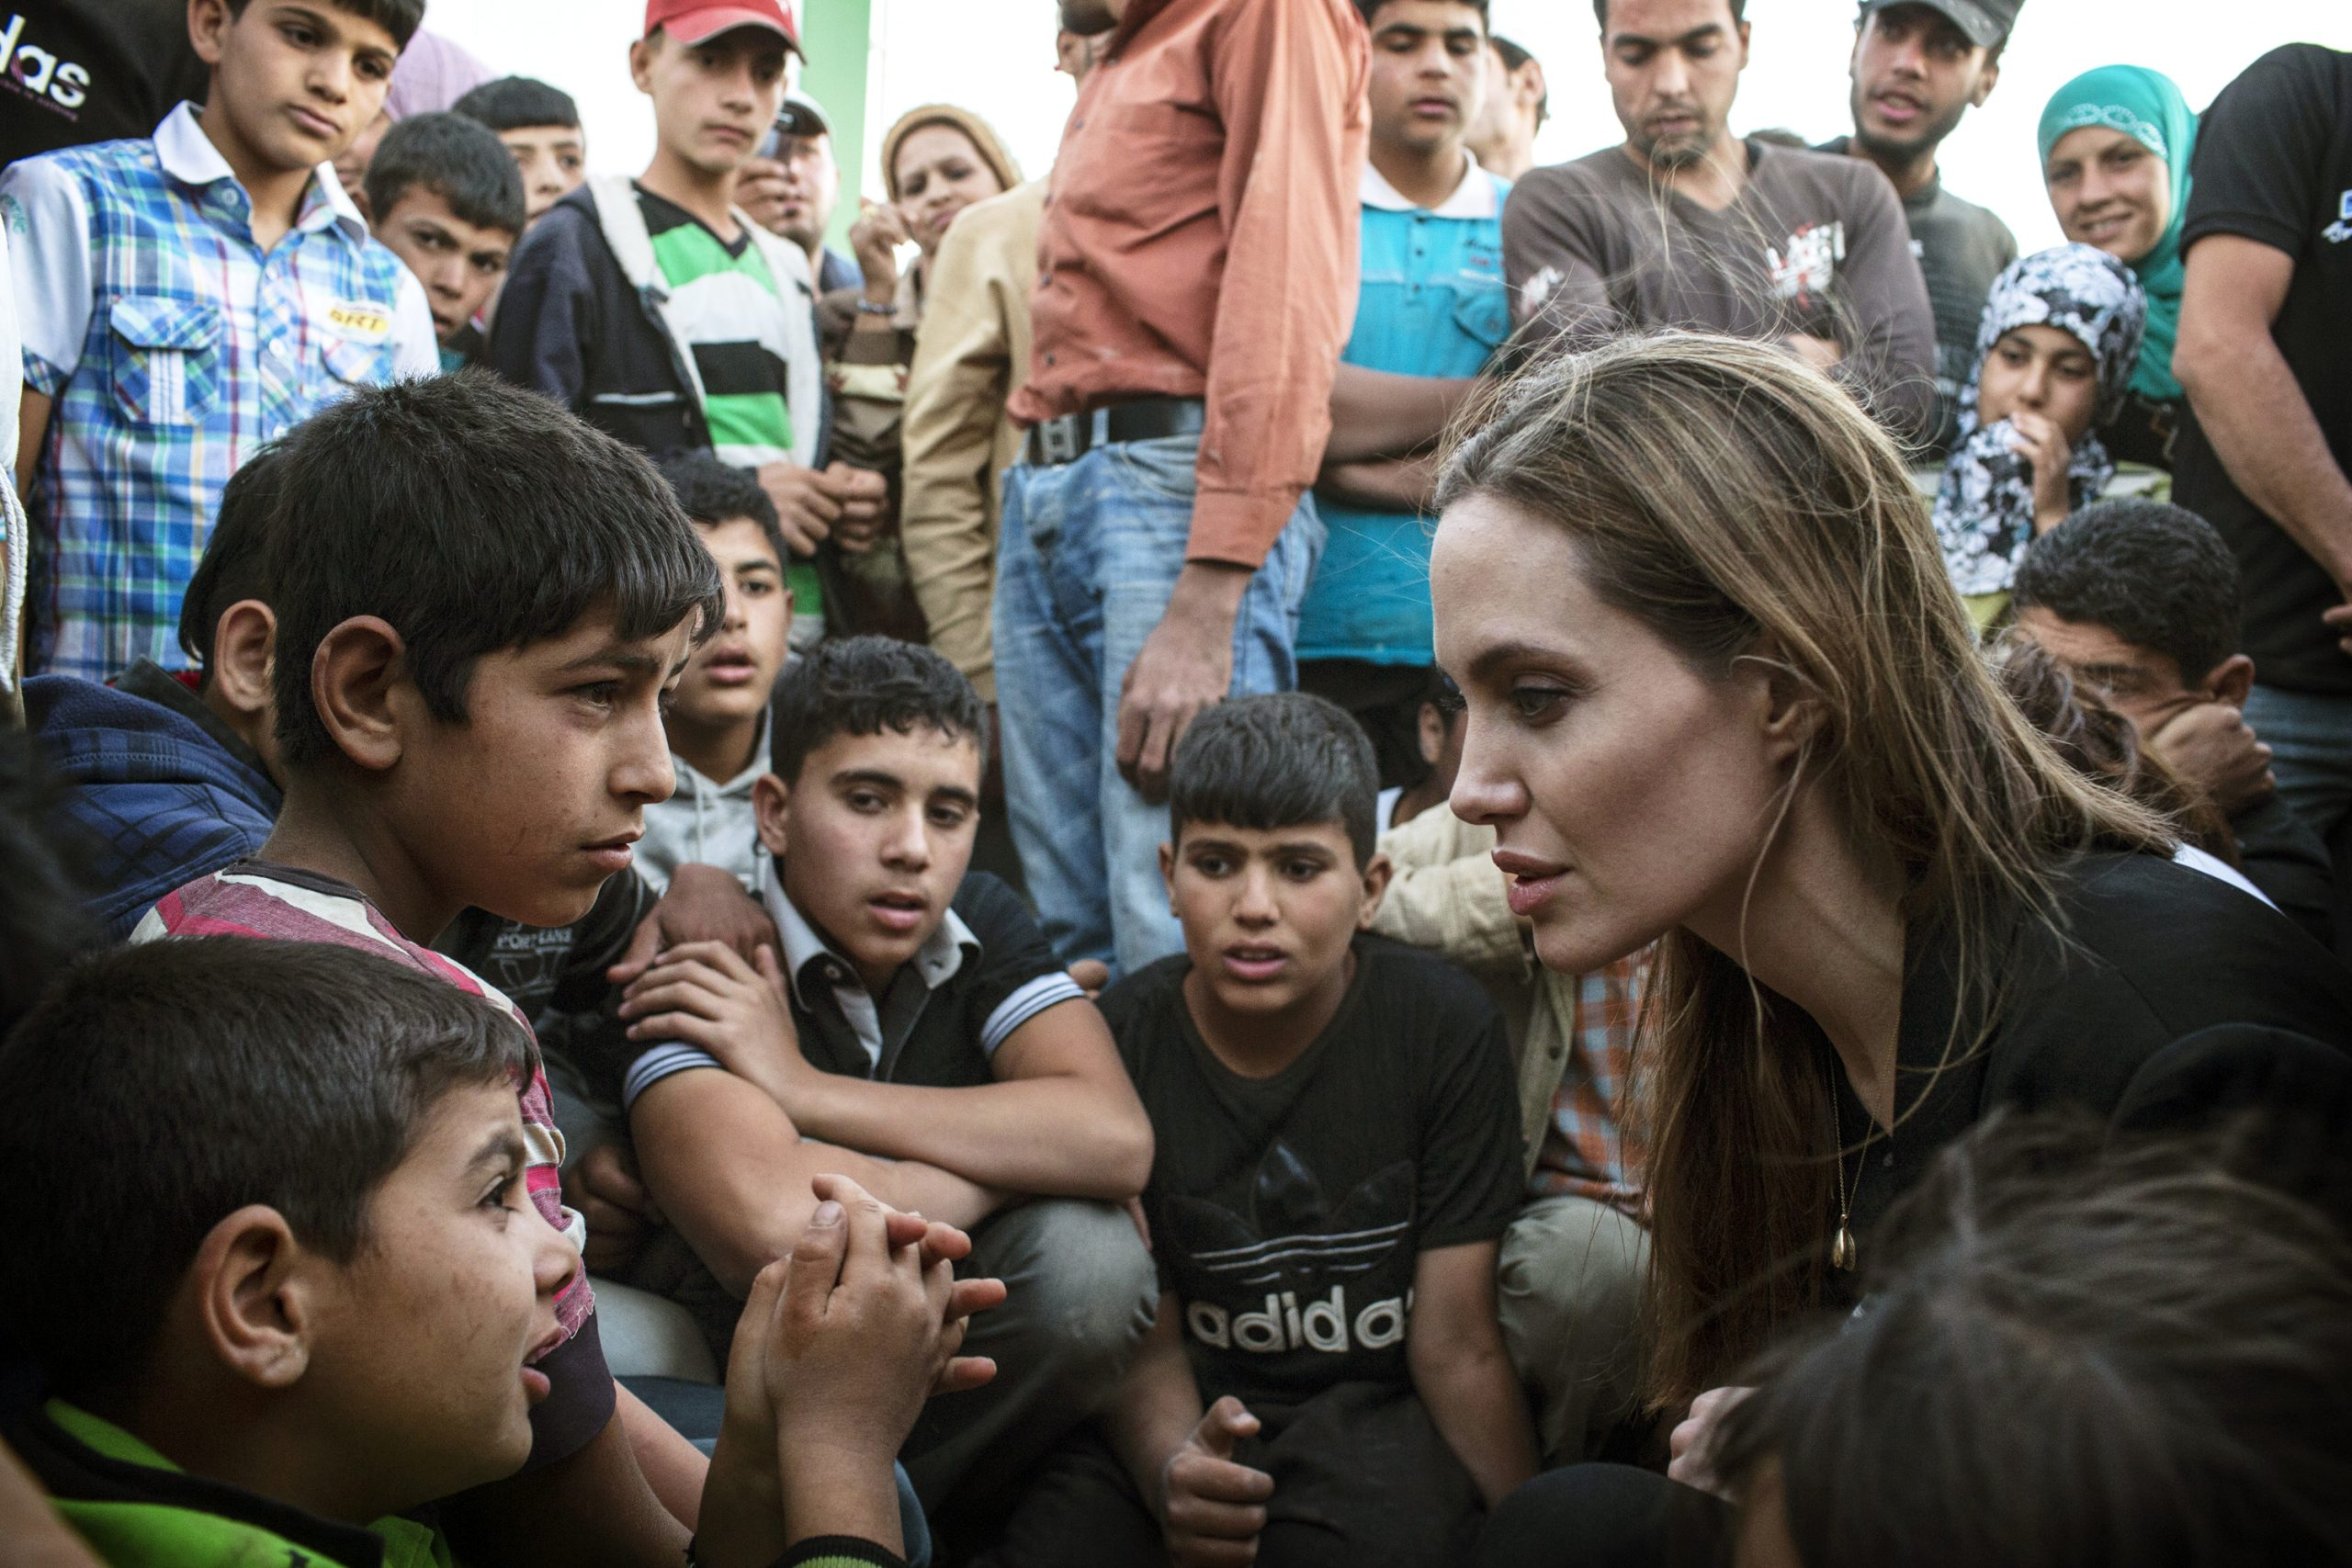 JOLIE 2024: Angelina Jolie for President of The United States in 2024 by Steven Mark Klein